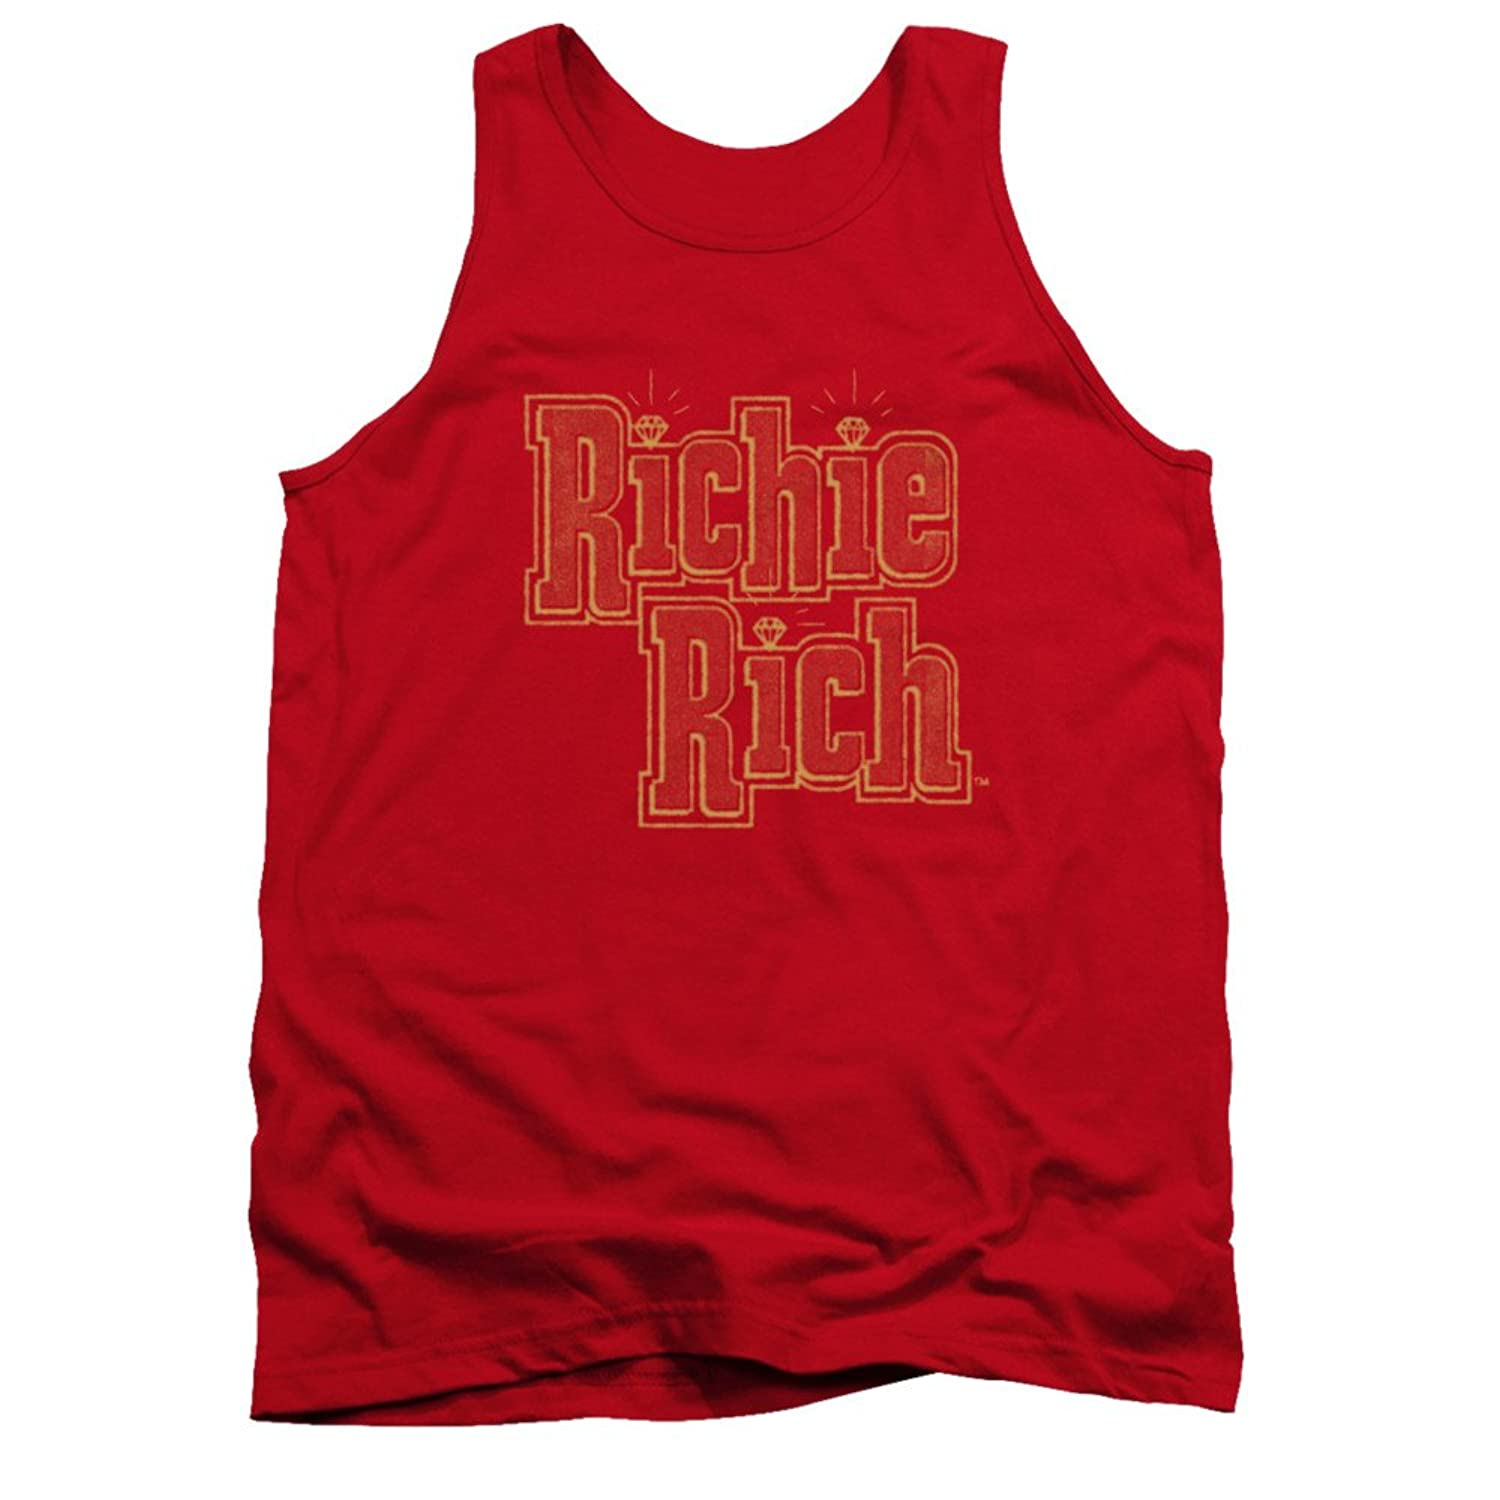 Richie Rich Harvey Comics Character Vinatage Stacked Logo Red Adult Tank Shirt